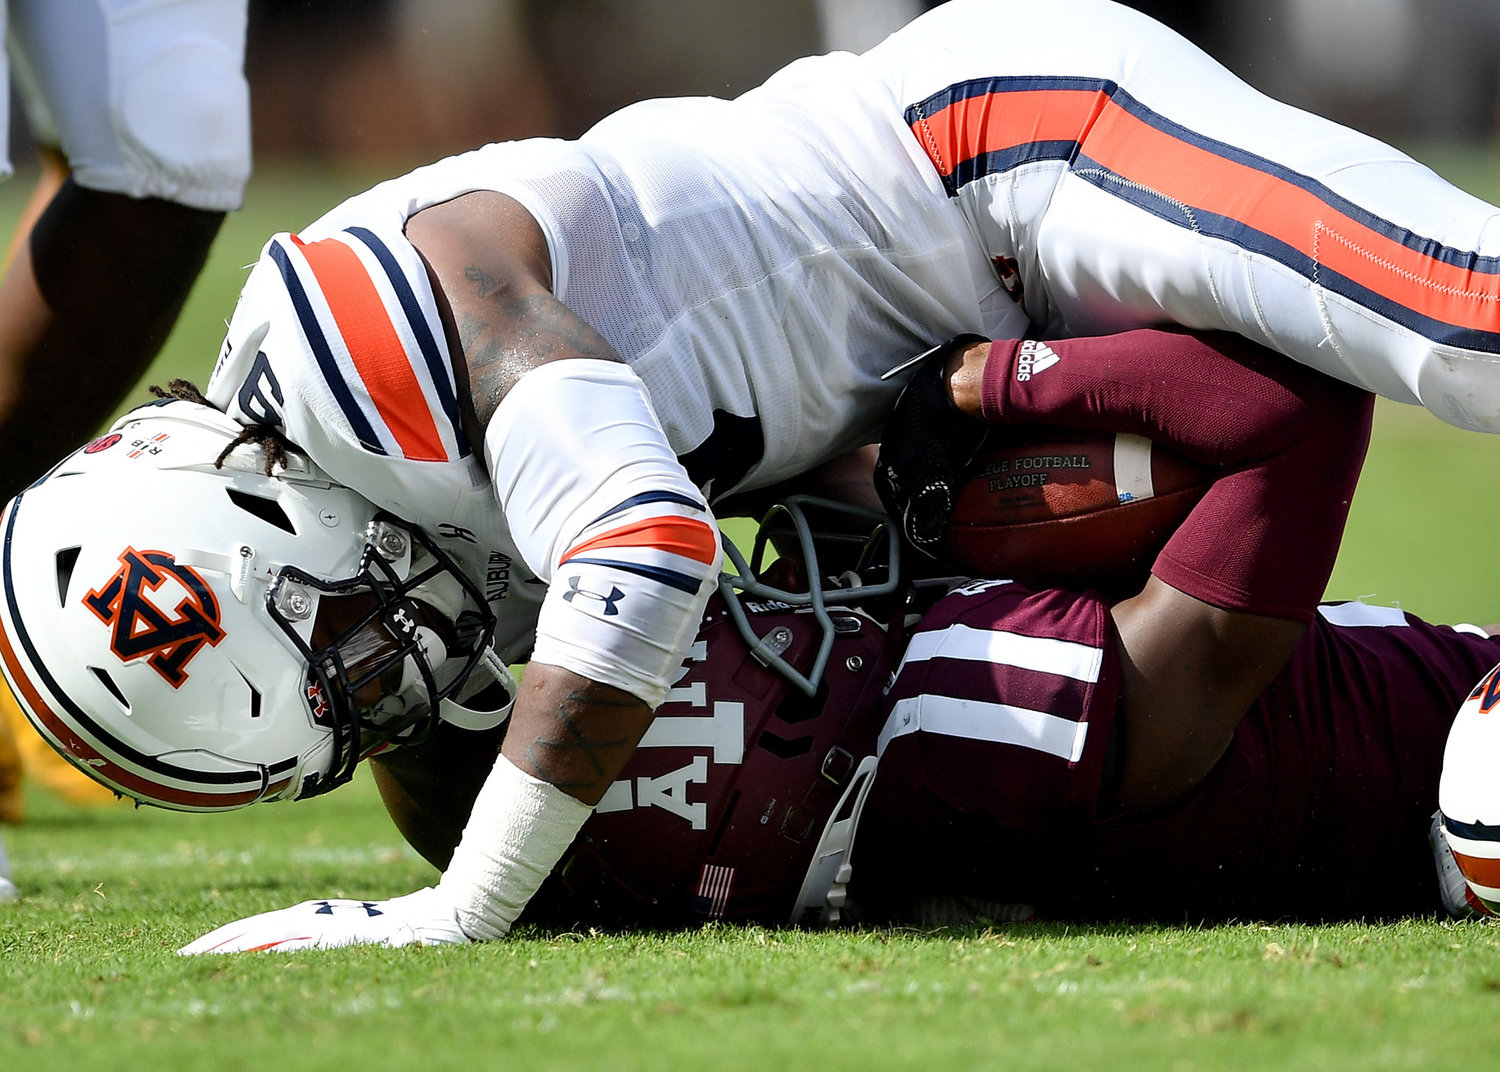 From the first half of an NCAA football game between the Texas A&M Aggies and the Auburn Tigers Saturday, Sept. 21, 2019, at Kyle Field in College Station Texas. Auburn wins 28-20.